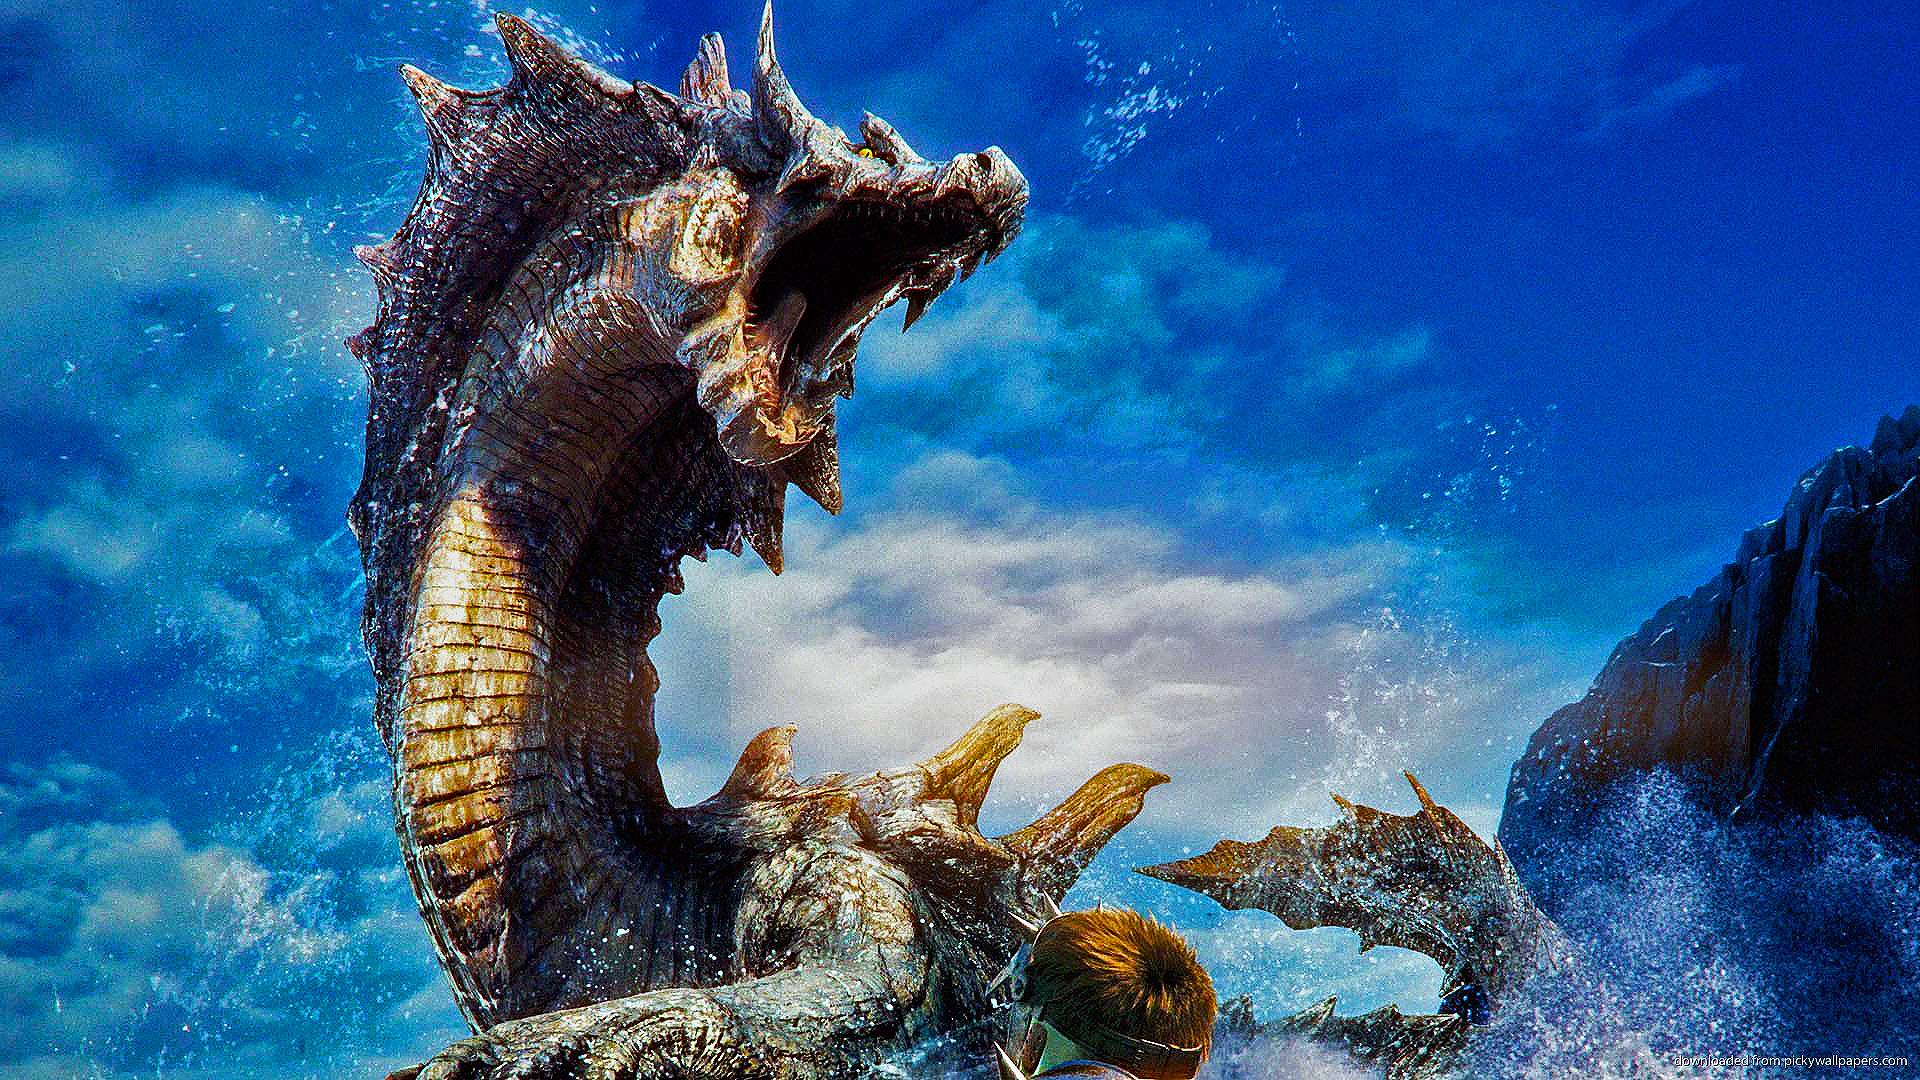 New Monster Hunter to be announced in March 2019